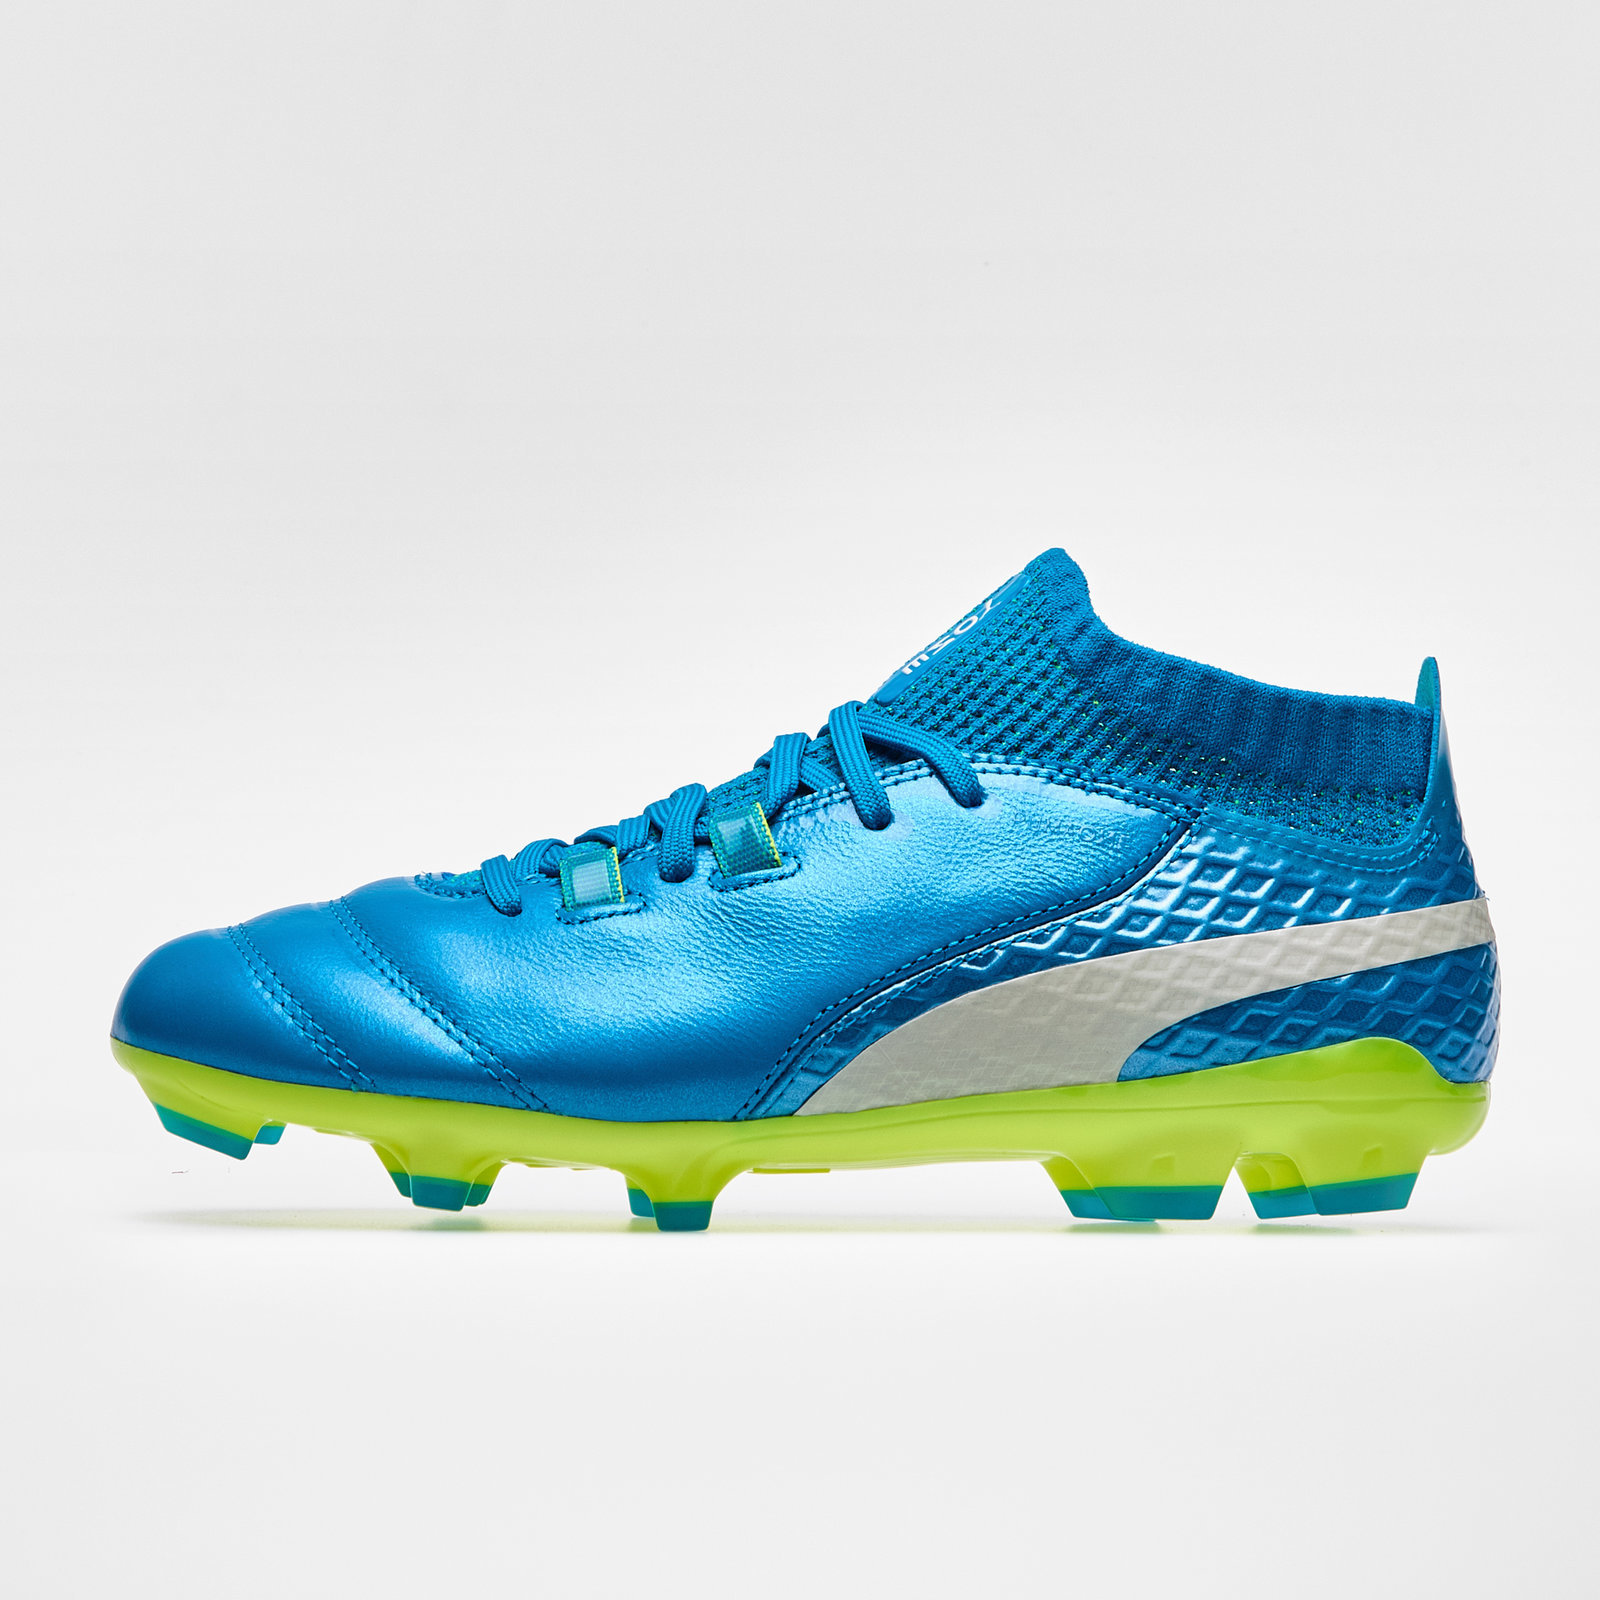 Details about Puma One 17.1 Kids FG Football Boots Sports Studs Trainers  Shoes e0c940b04